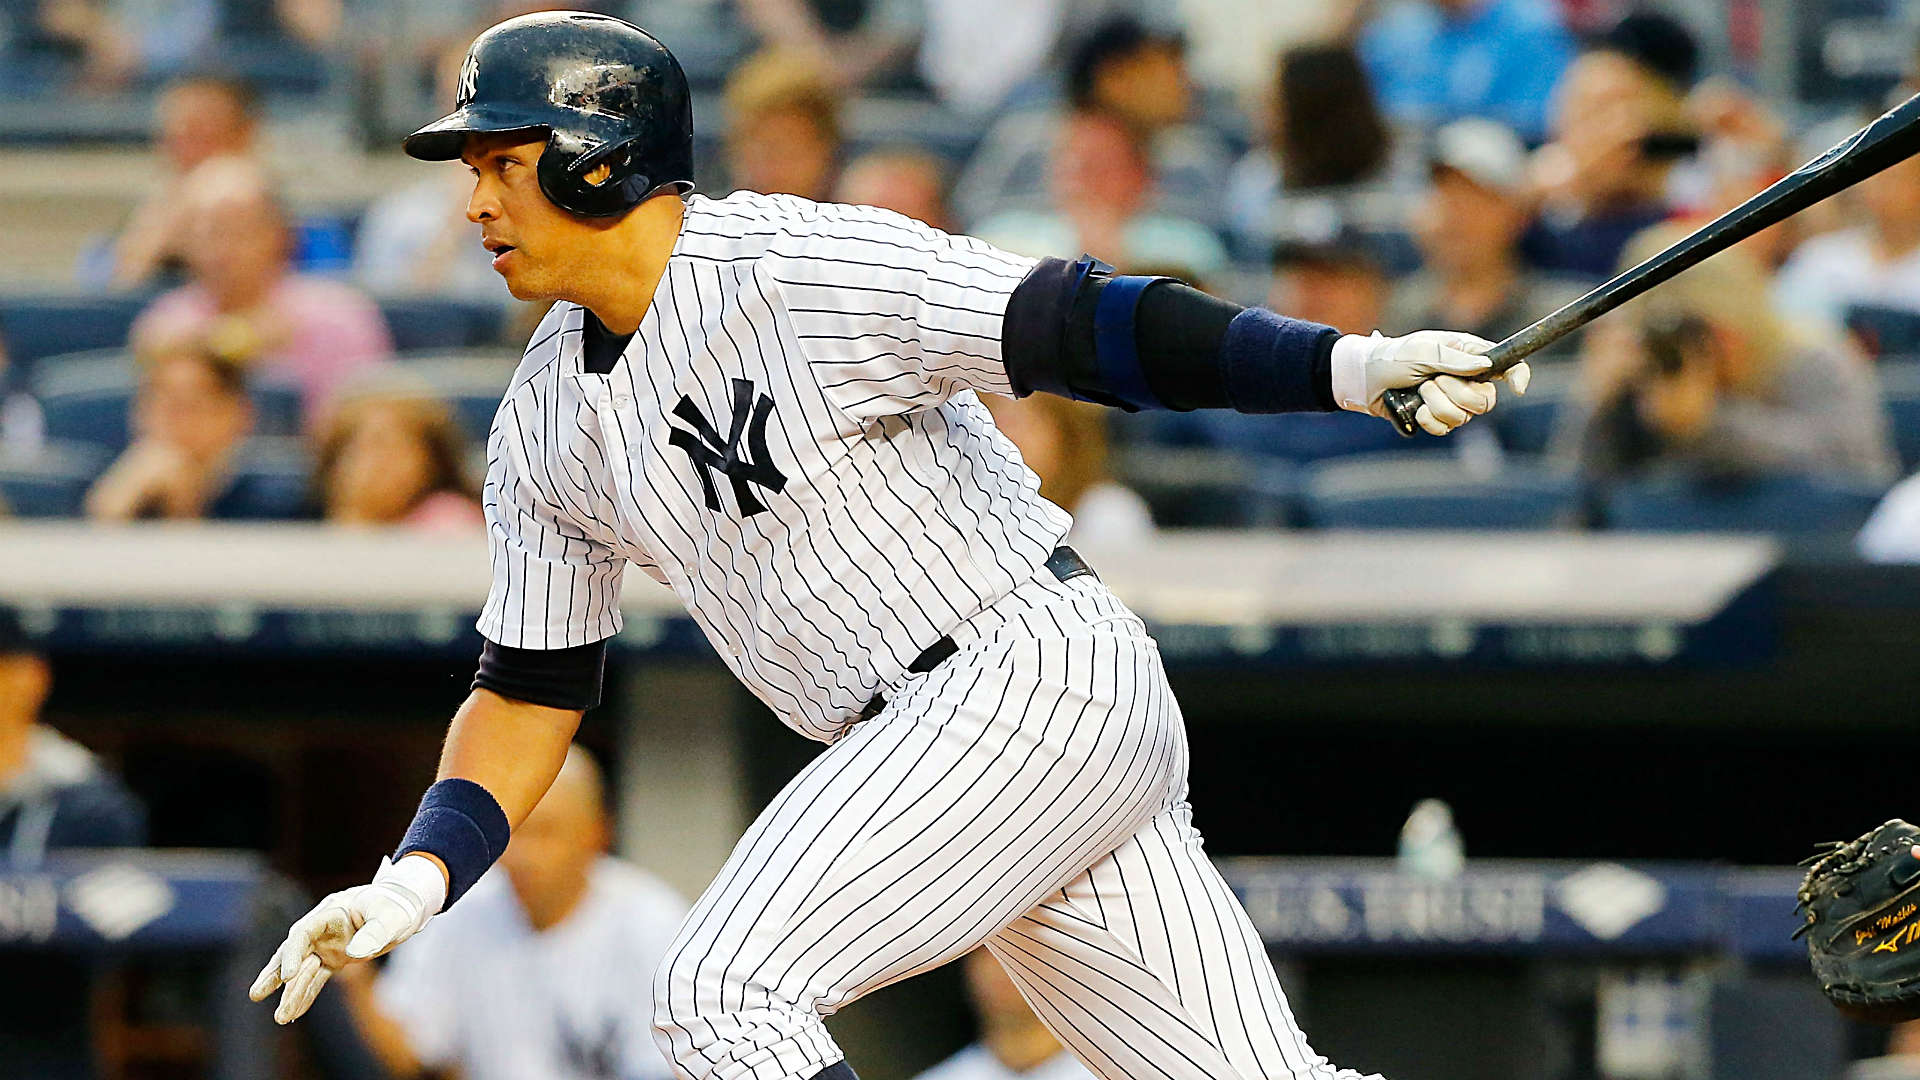 Alex Rodriguez an All-Star snub despite having strong case